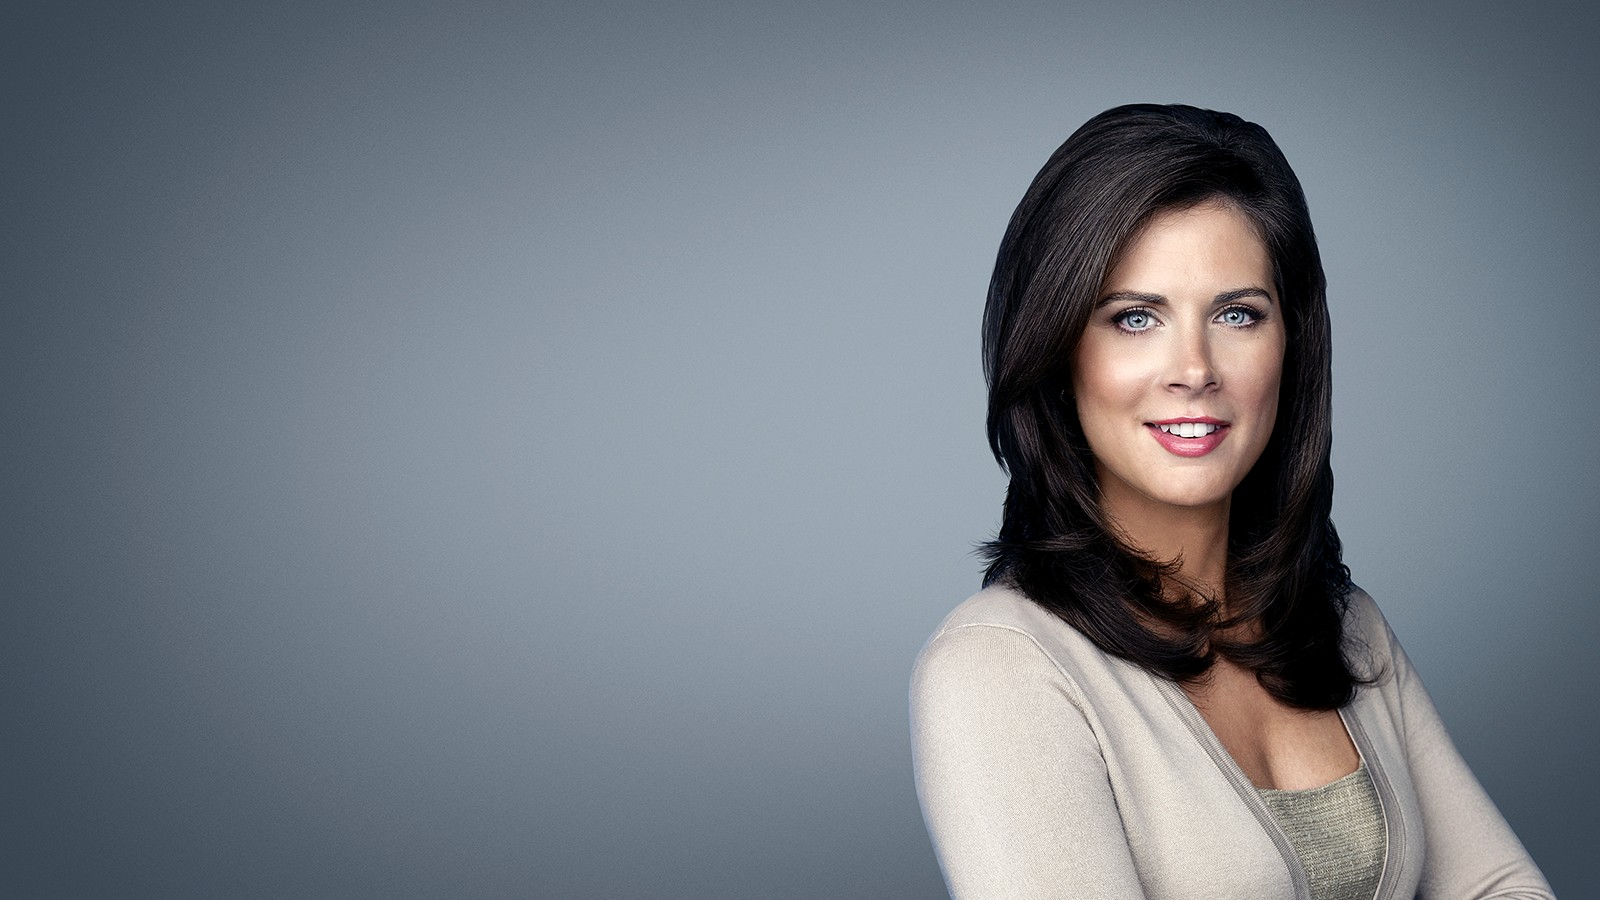 CNN Profiles - Erin Burnett - Host - CNN - photo#41